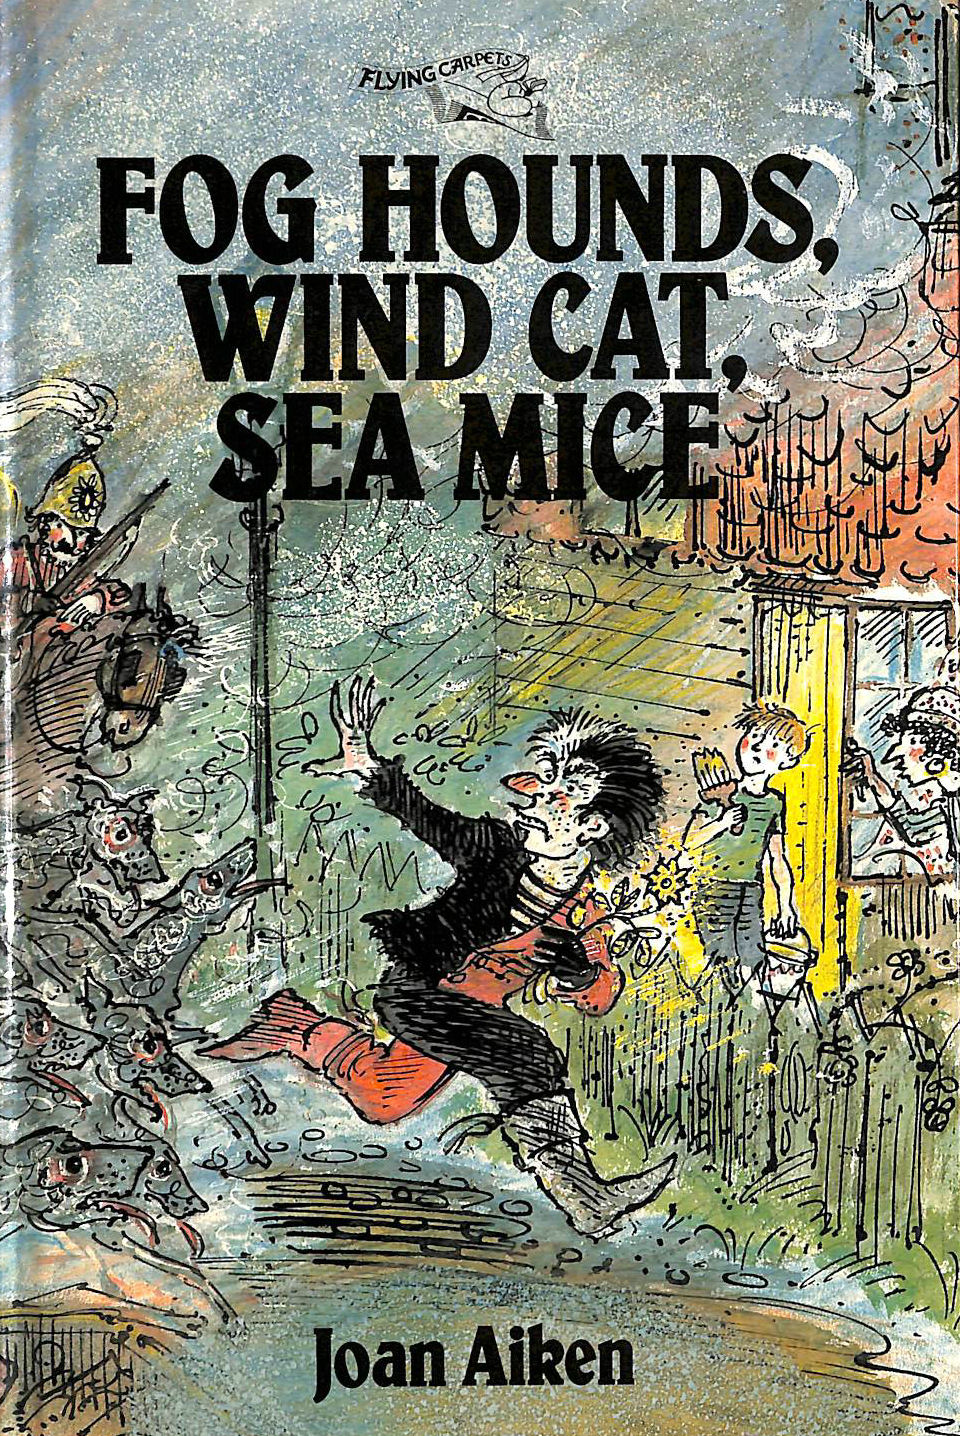 Image for Fog Hounds,Wind Cat,Sea Mice